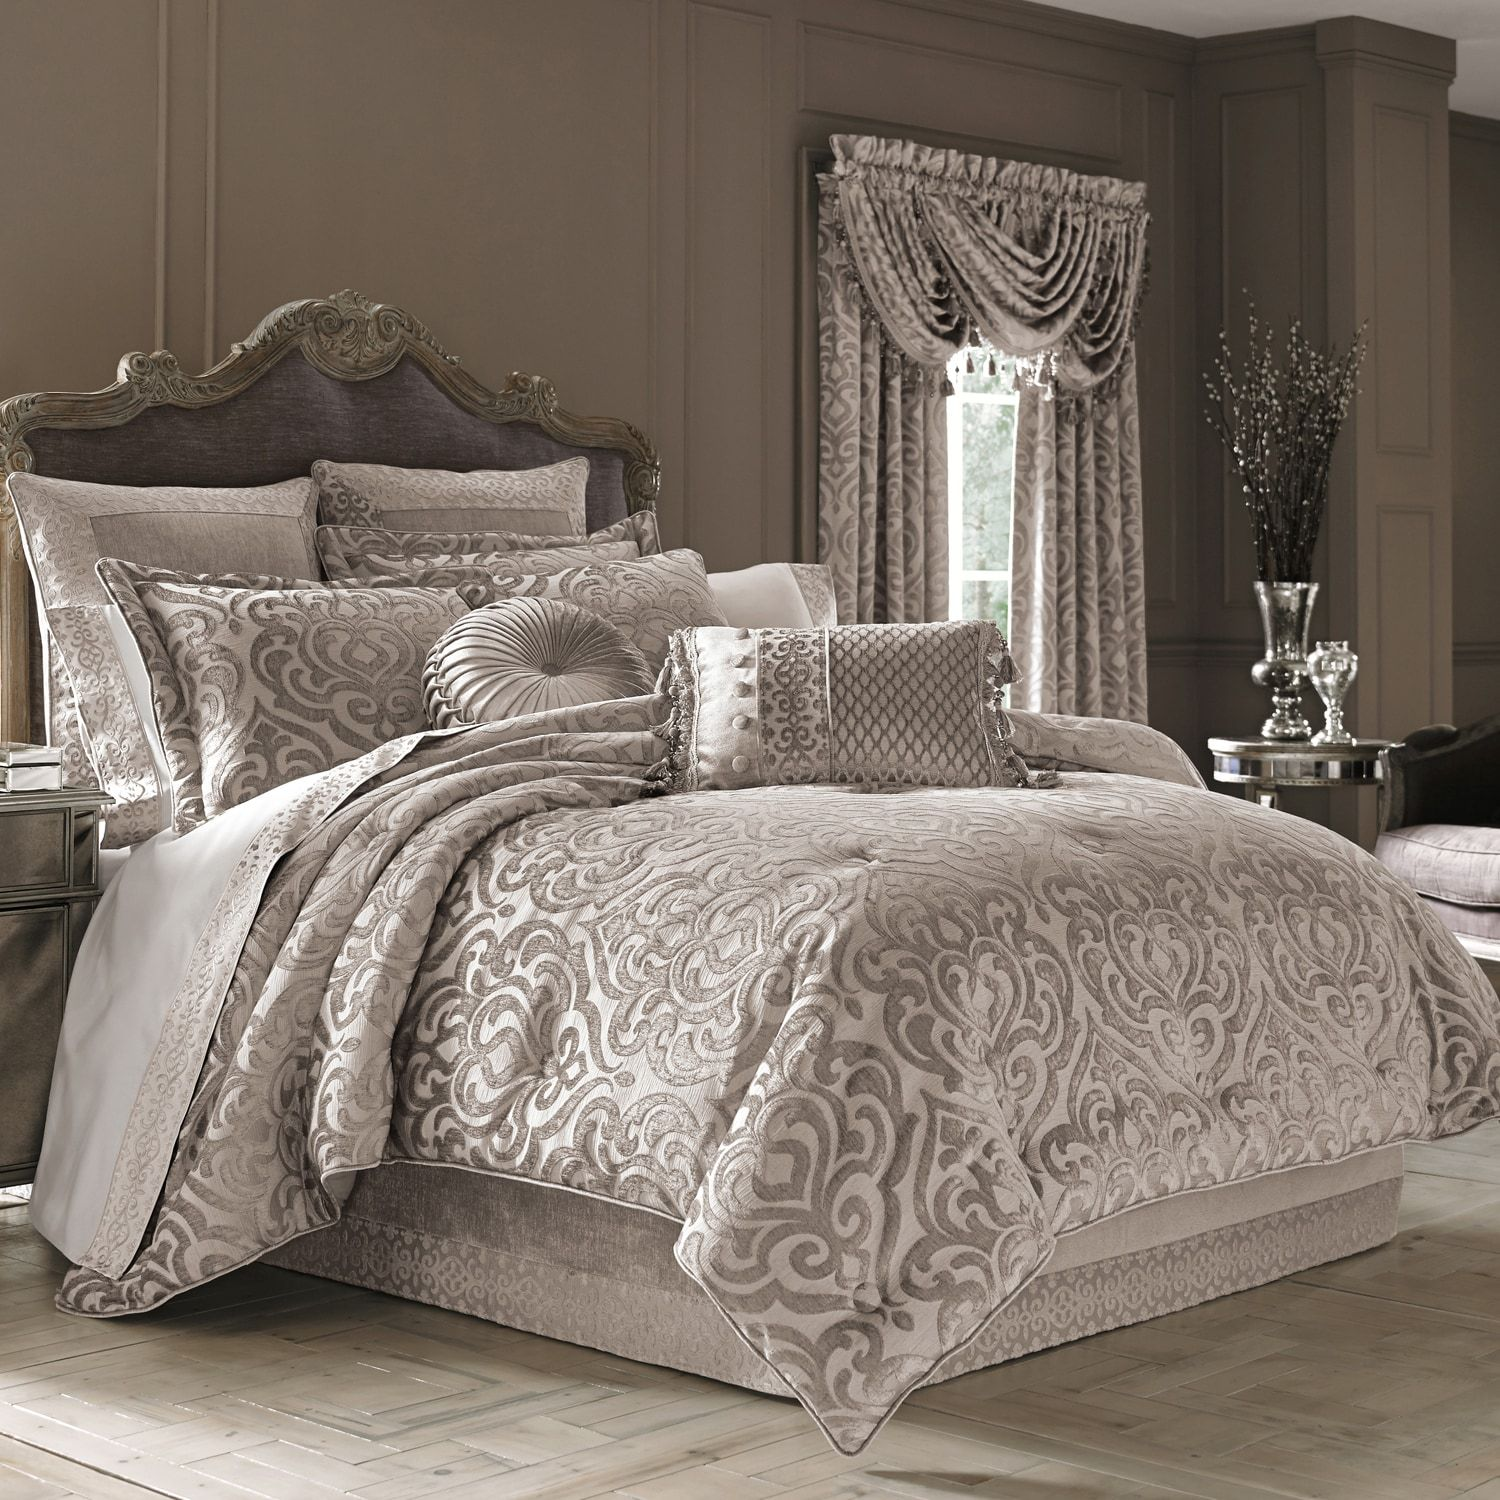 Bedding Decor: Sydney Pearl Full Comforter Set